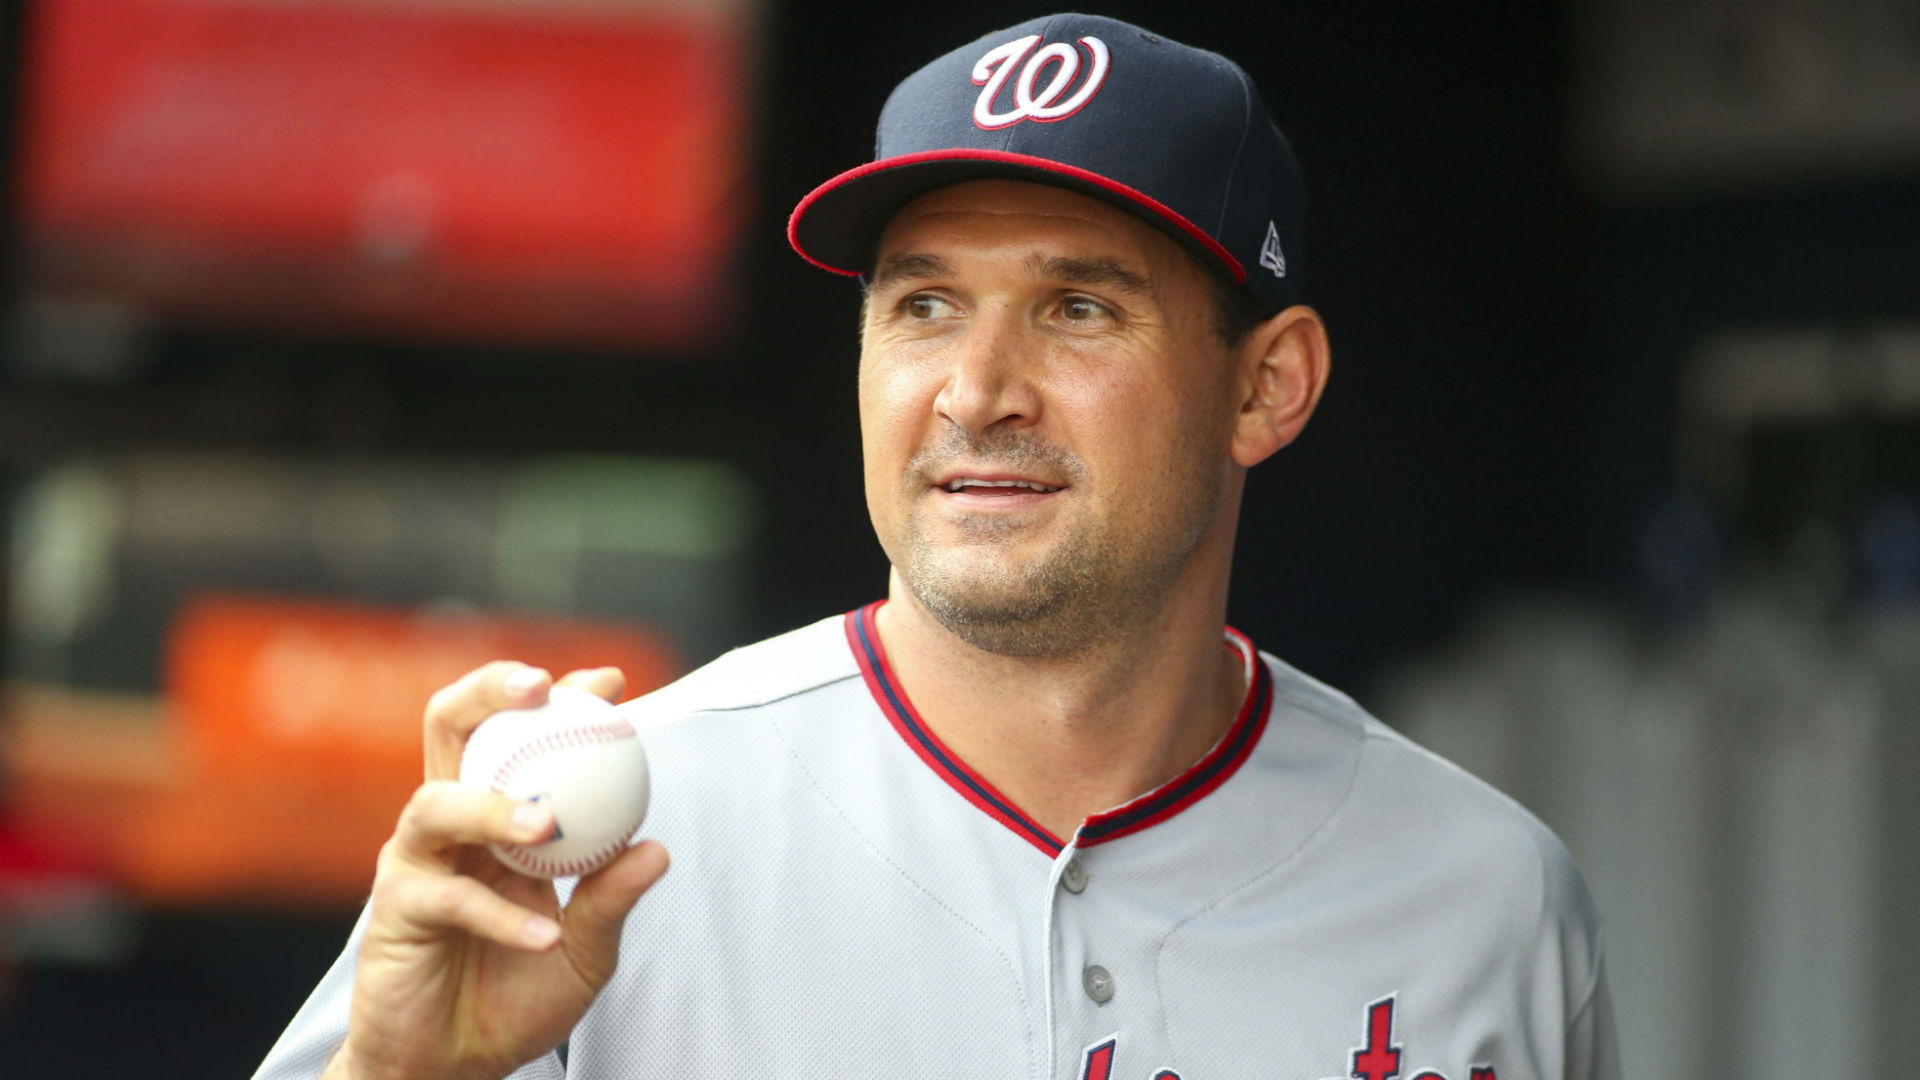 Sandbridge Local, Ryan Zimmerman of Washington Nationals, Win World Series Game 2